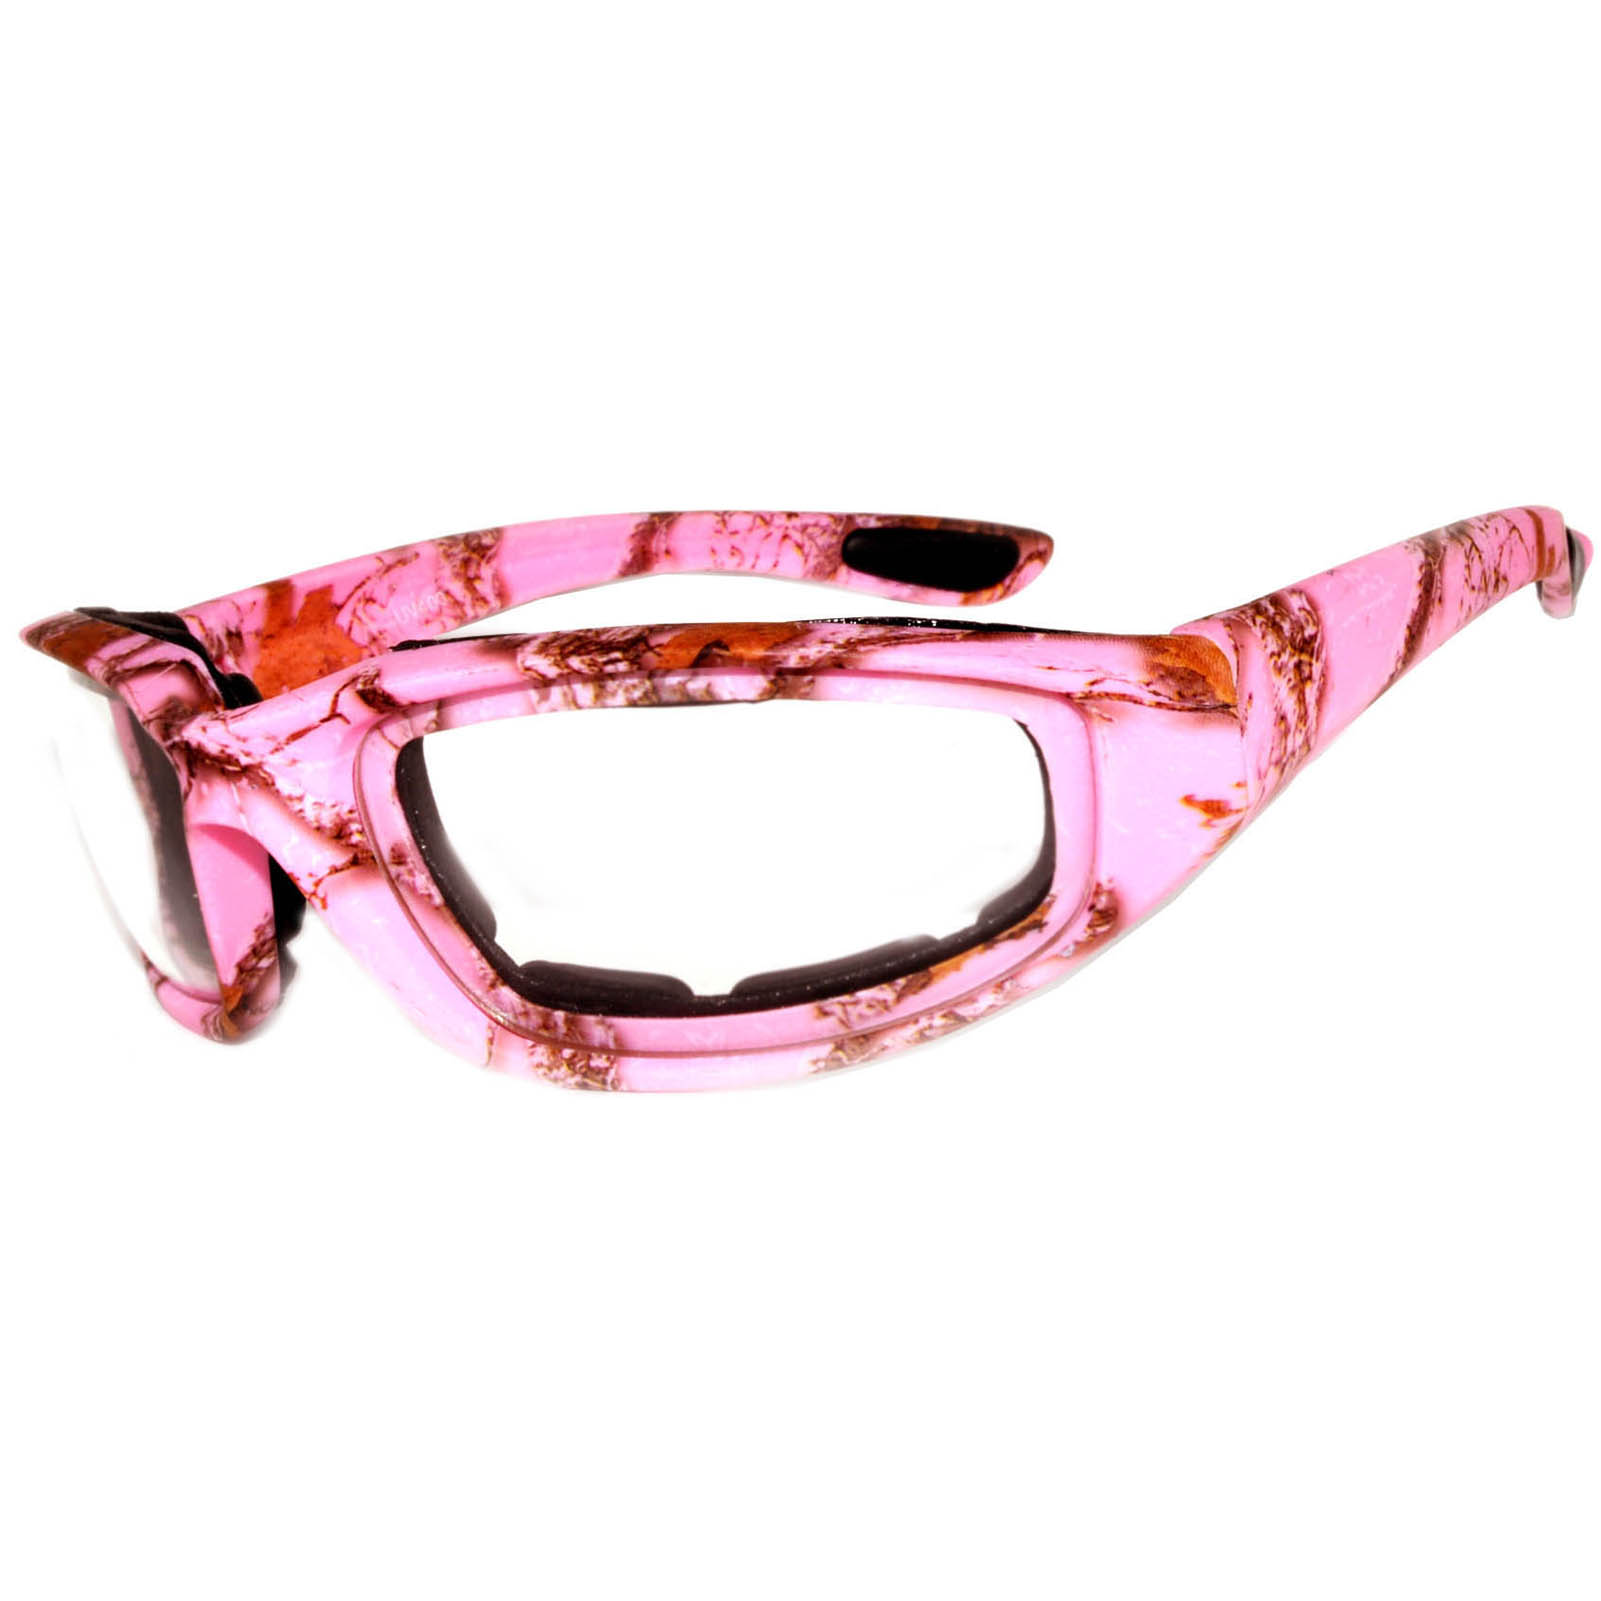 OWL Eyewear Motorcycle Padded Glasses Camo Pink Frame Clear Lens ...